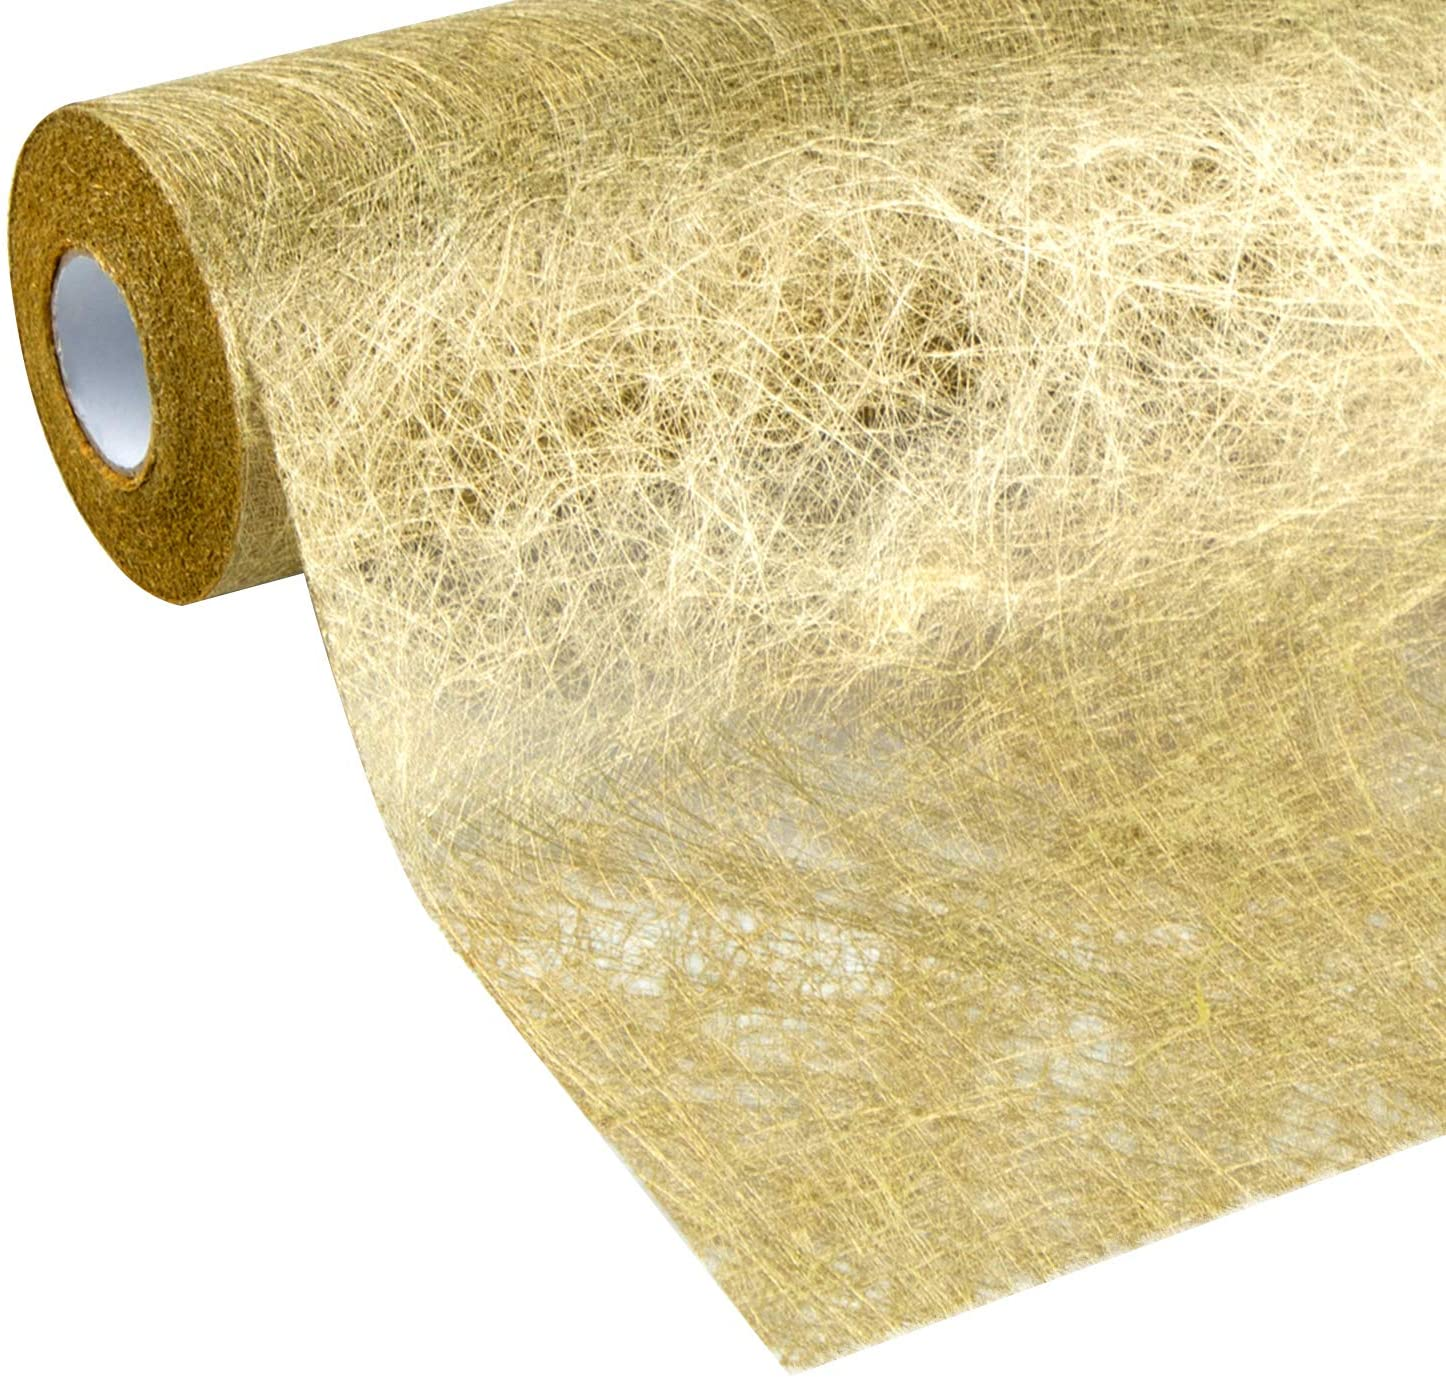 WELTRXE Table Runner Gold, Decorative Glitter Metallic Table Runner Roll 12 Inch x 16 Ft Non-Woven Fabric Dining Table Decor for Wedding, Valentines Day, Parties, Birthday, Baby Shower, Christmas